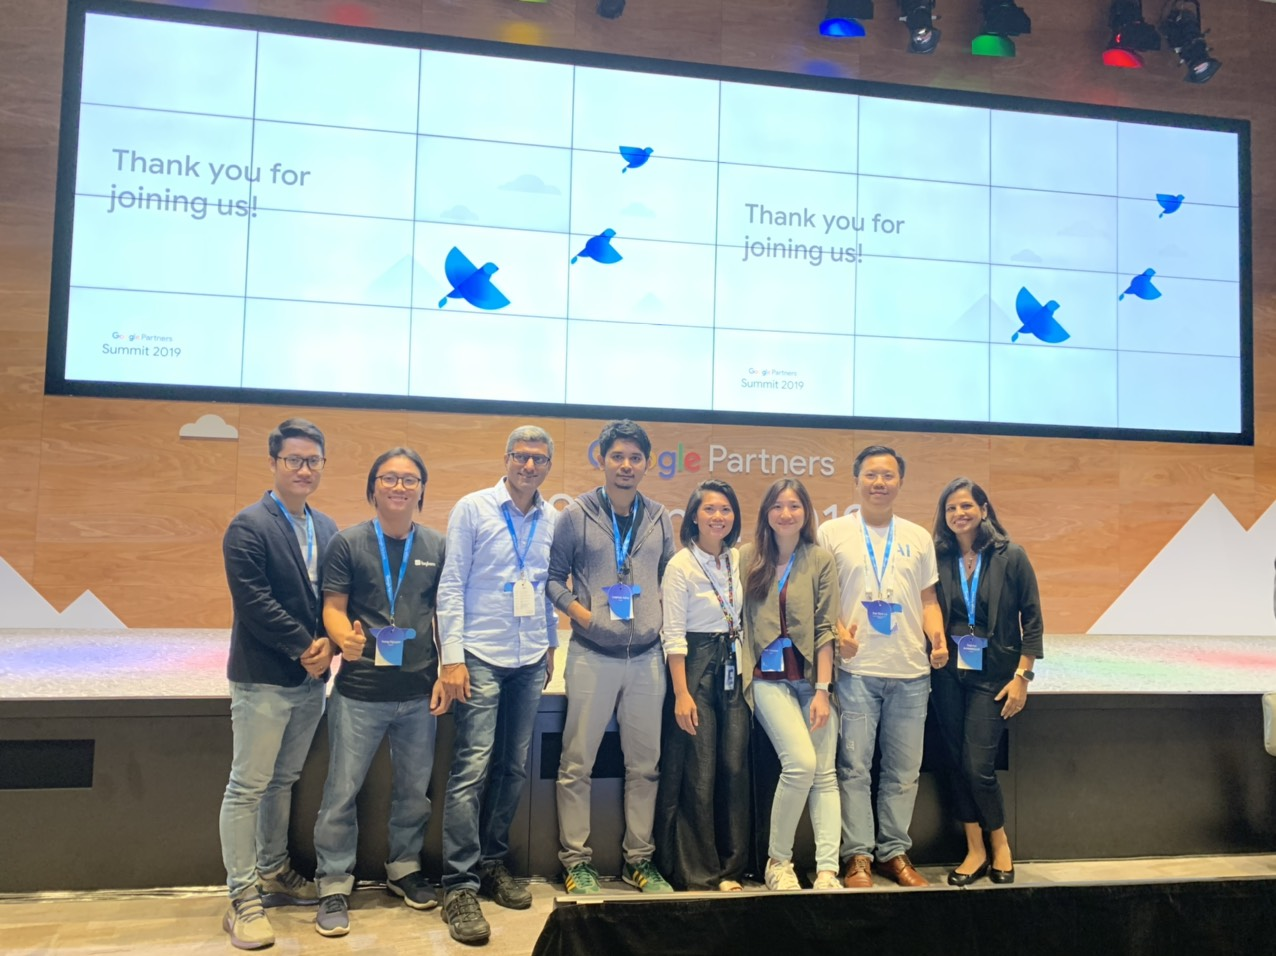 bigbom-google-partners-summit-2019-apac-1